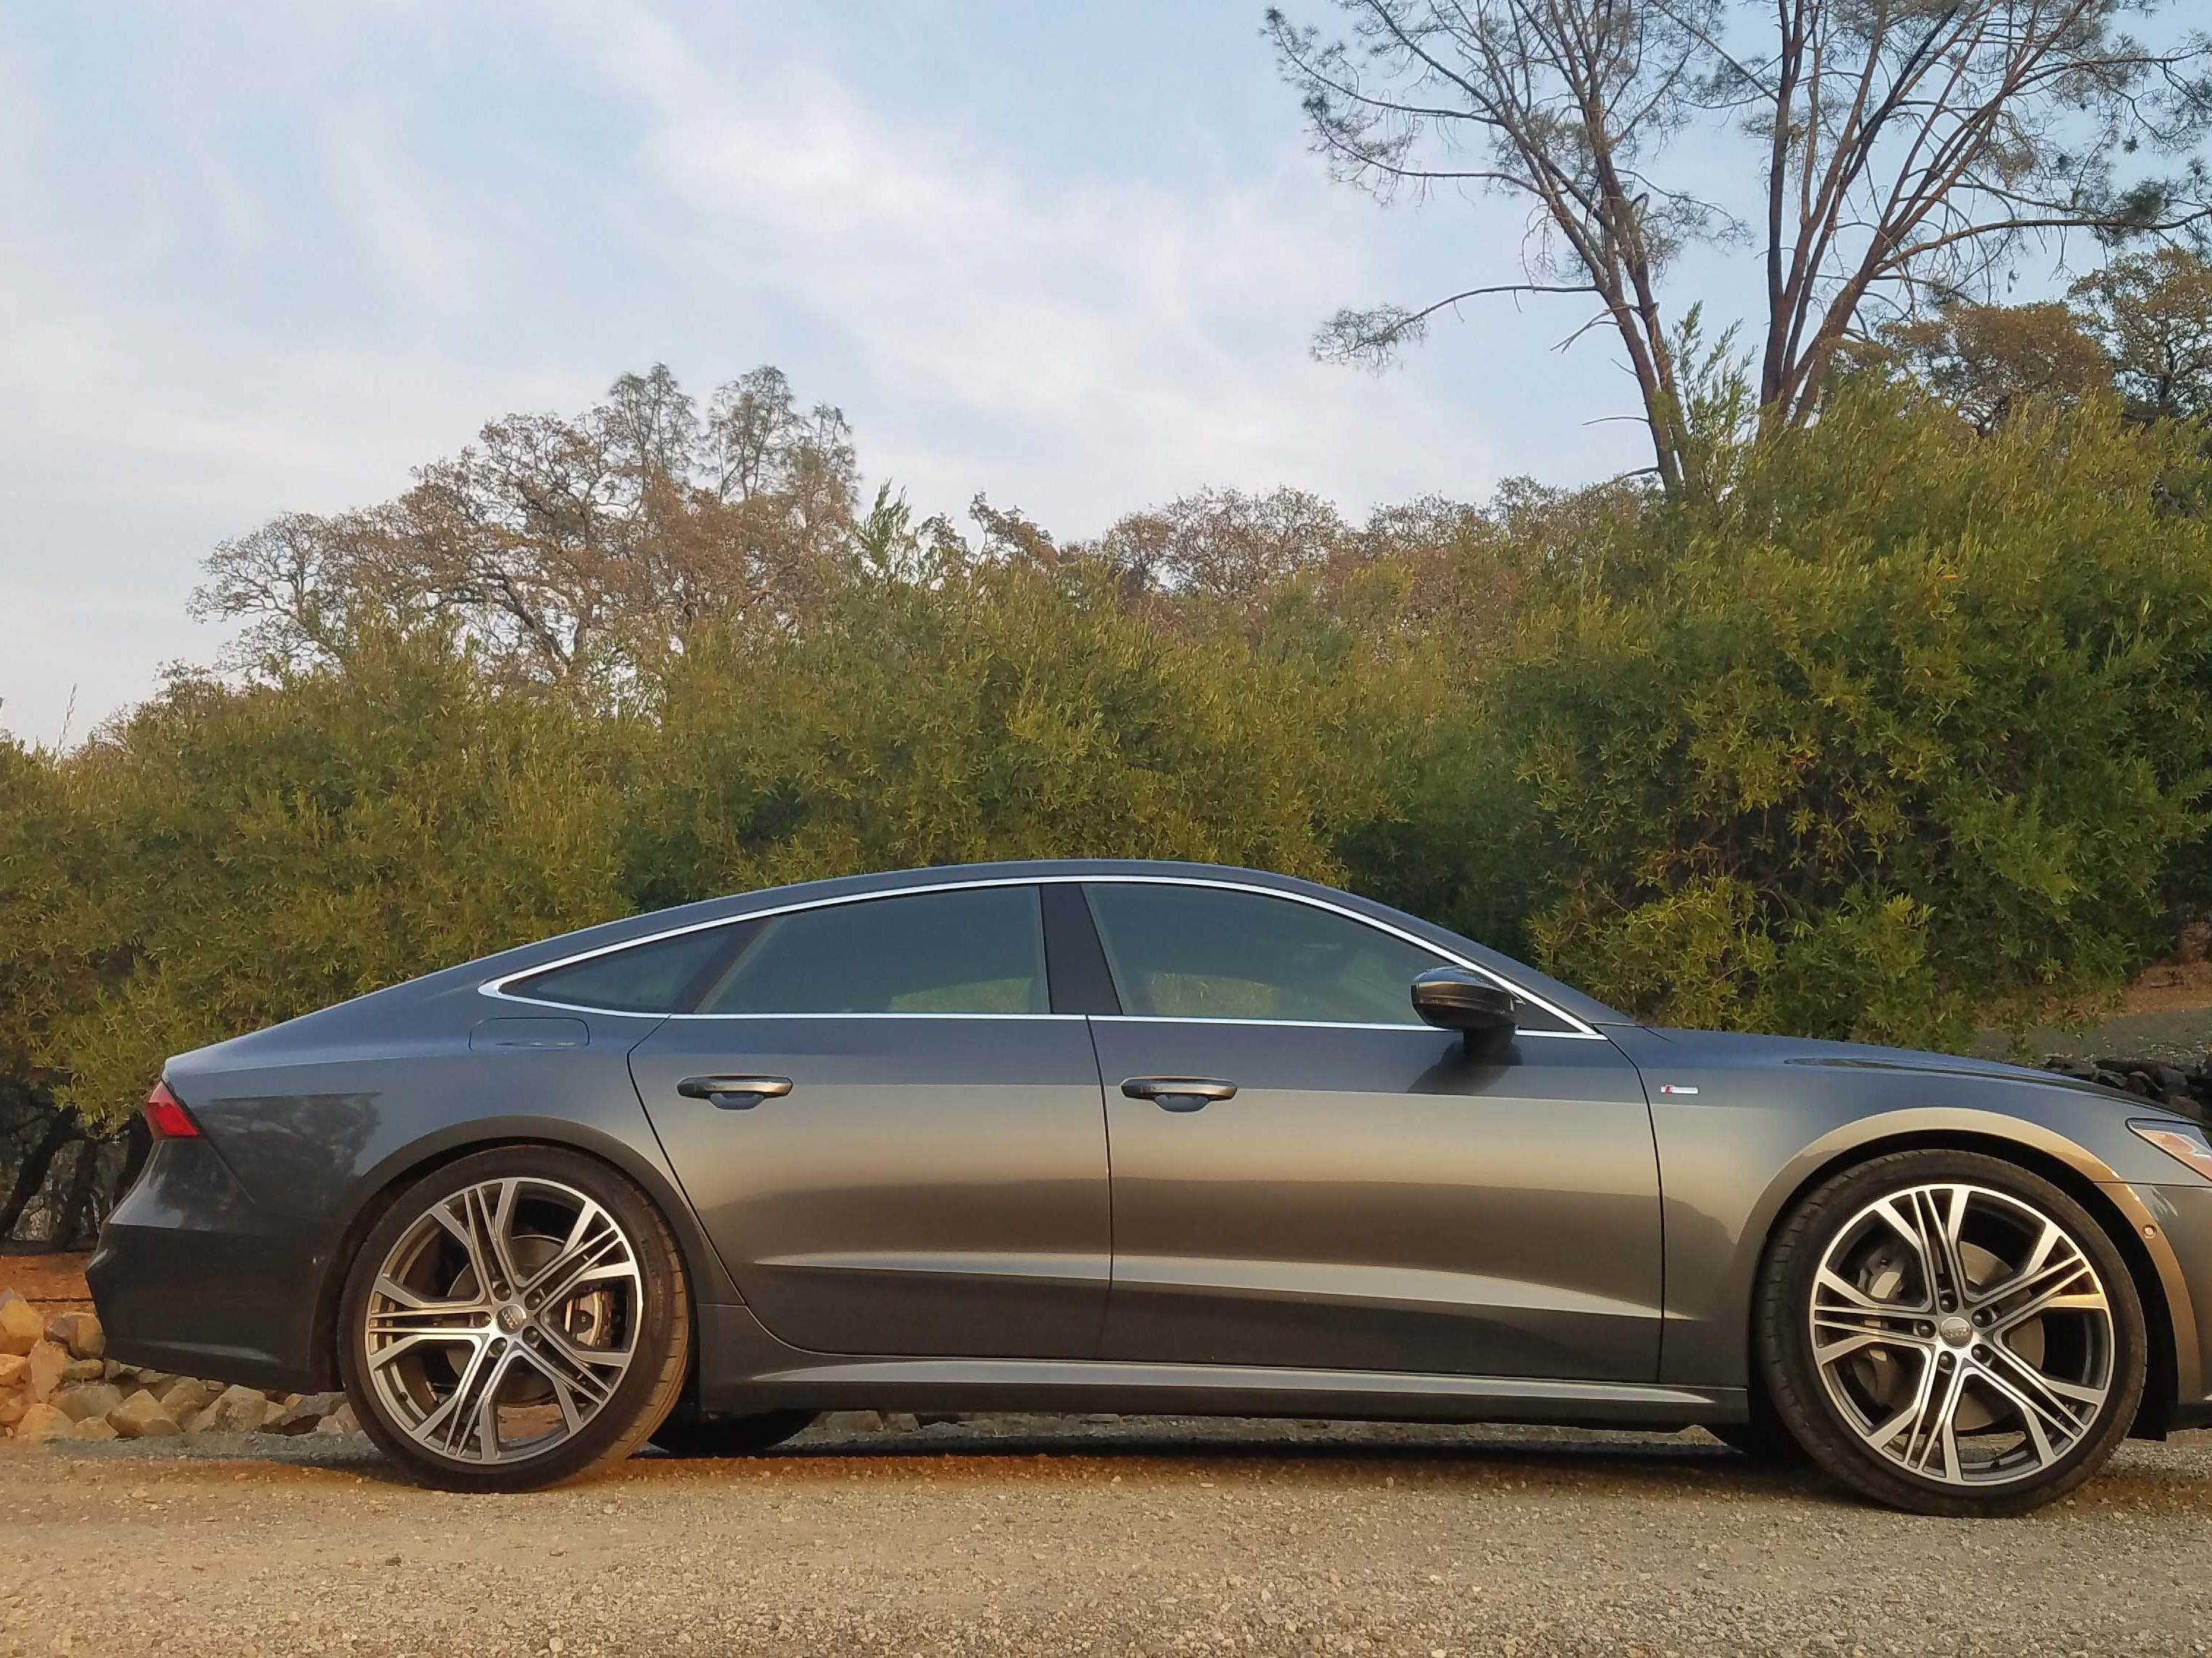 """I got the gift of 21-inch wheels,"" says Audi A7 exterior designer Sebastiano Russo. Designers love big wheels, and the new set complements the big sedan's fastback lines."